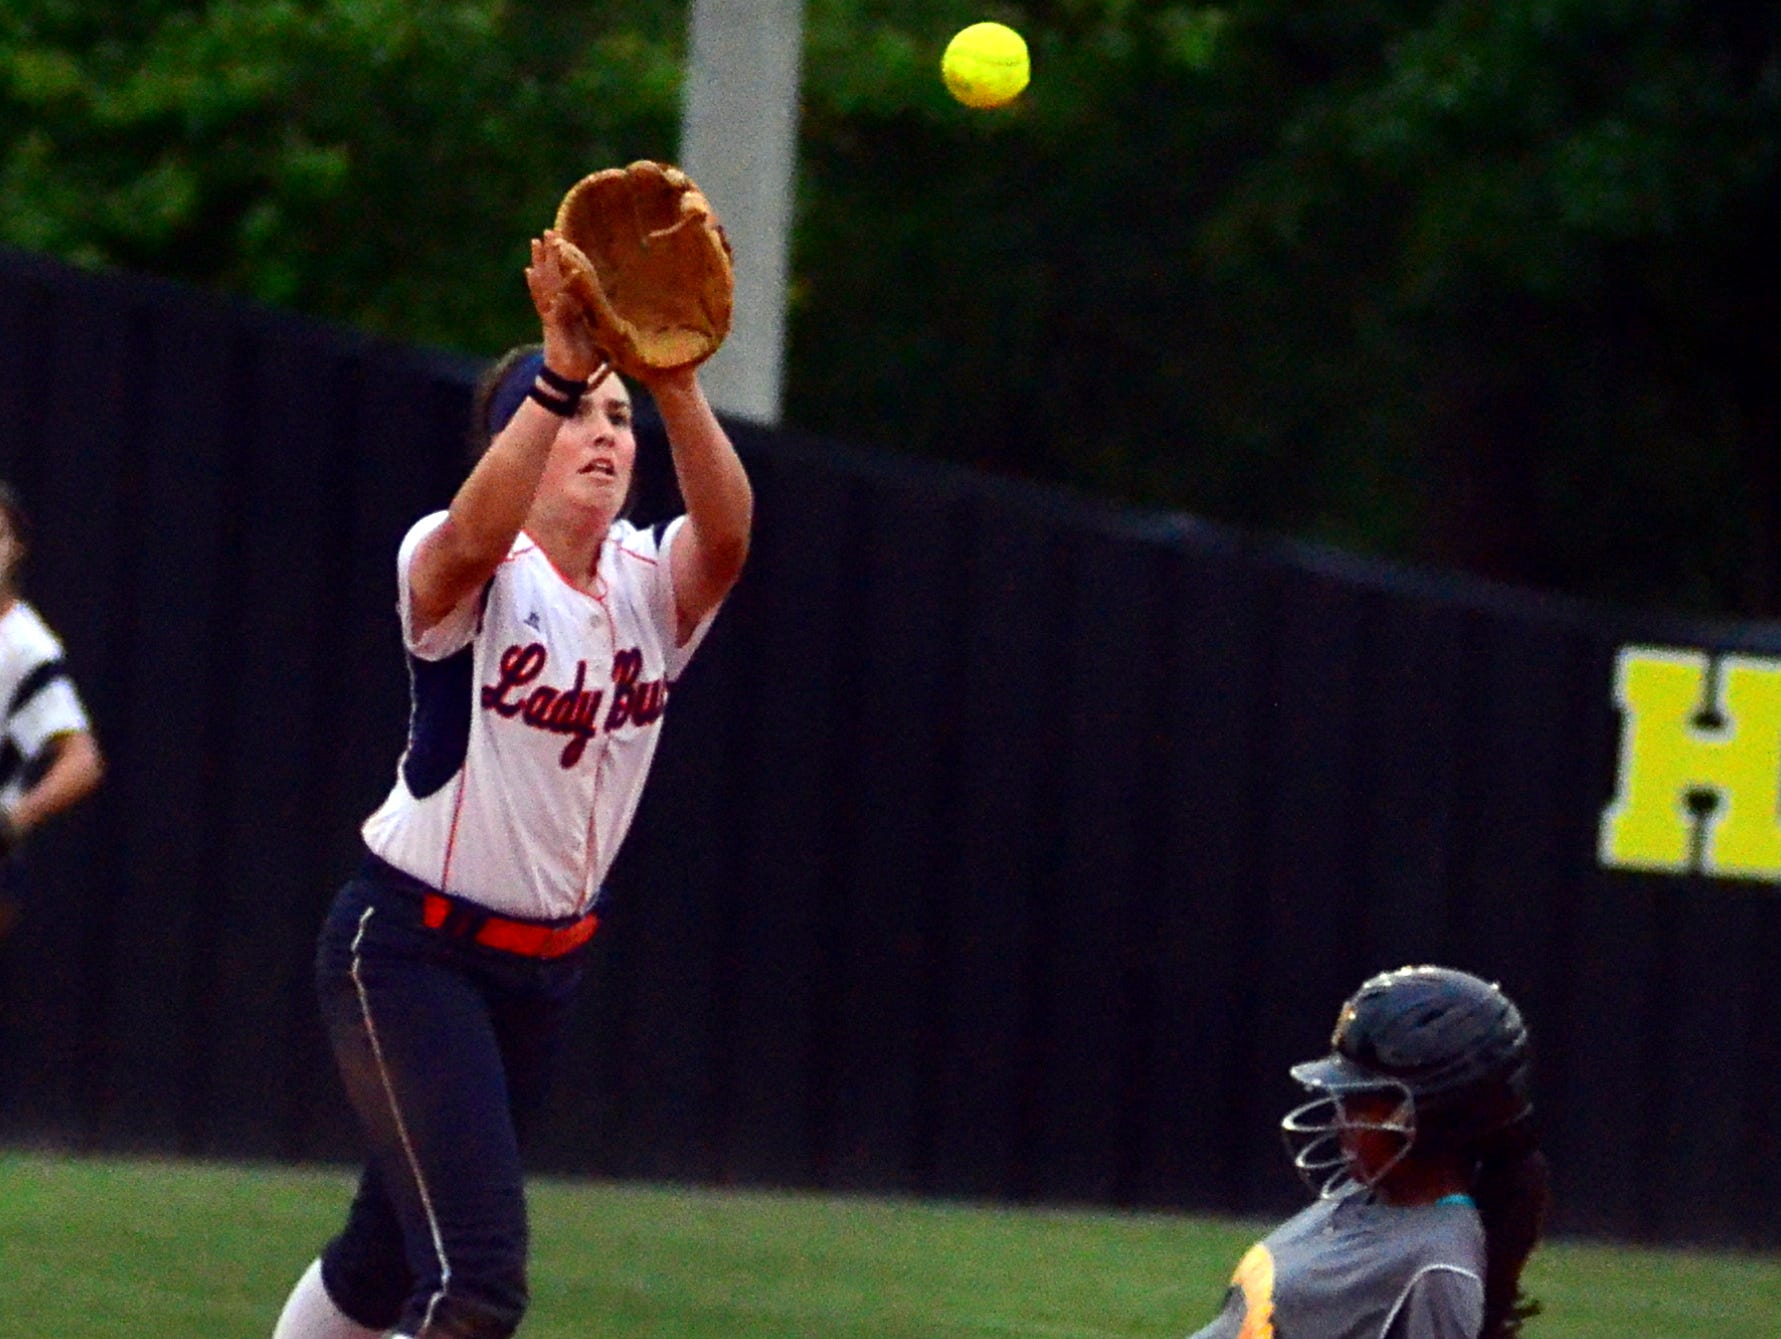 Beech High sophomore second baseman Kaylor Chaffin receives a throw as Hendersonville junior Ace Hanson slides into second base during third-inning action. Chaffin doubled and drove in a run in the Lady Buccaneers' 5-4 loss.